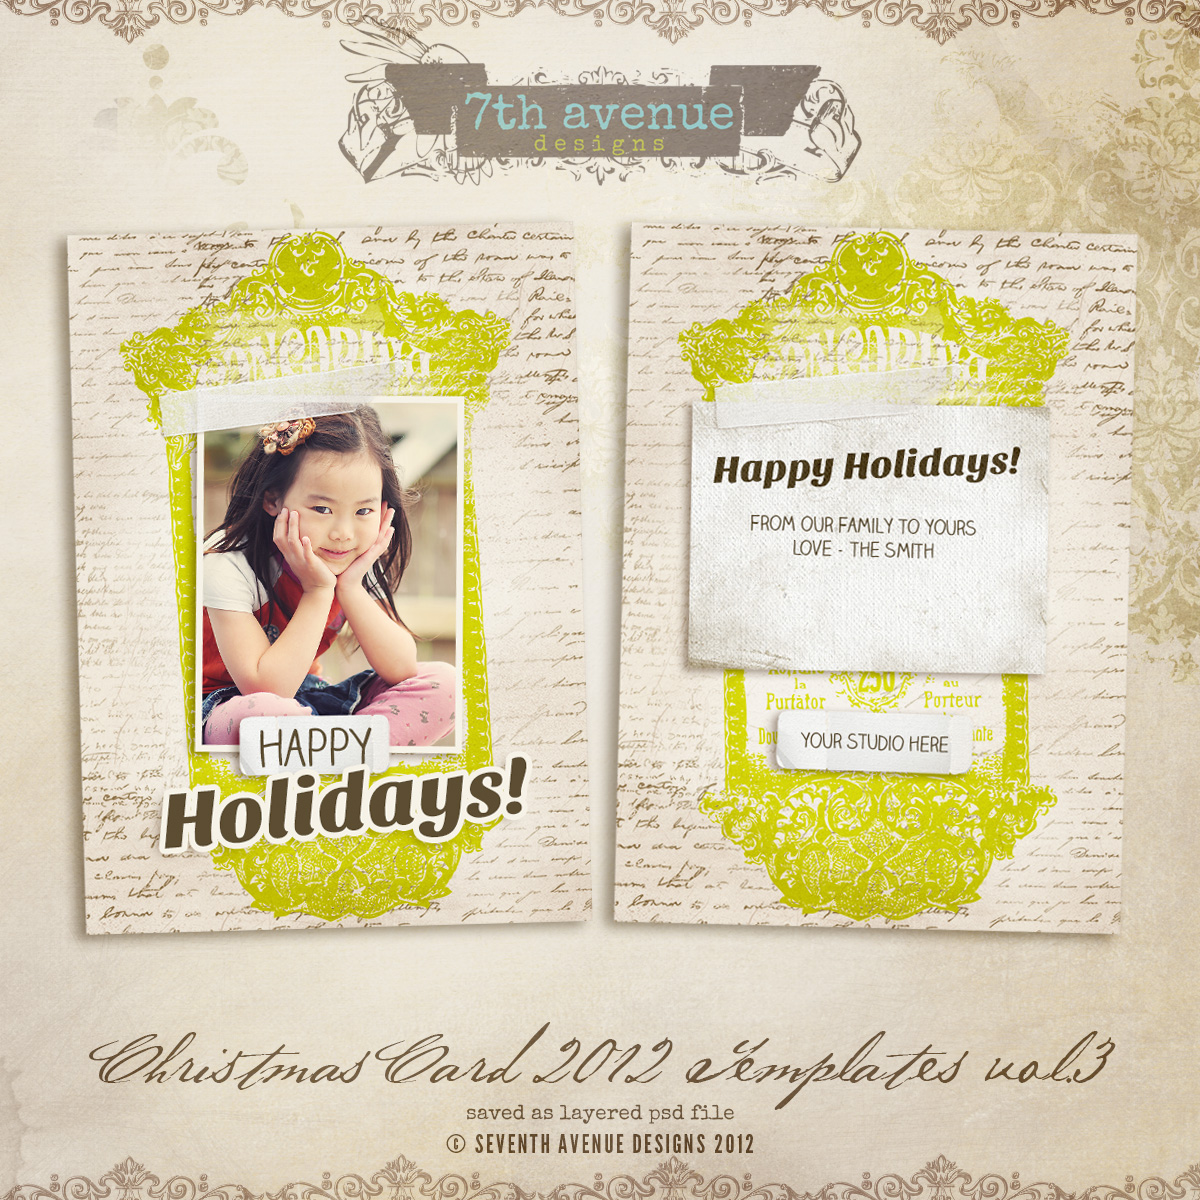 2012 Christmas Card Templates vol.3 -- 5x7 inch card template